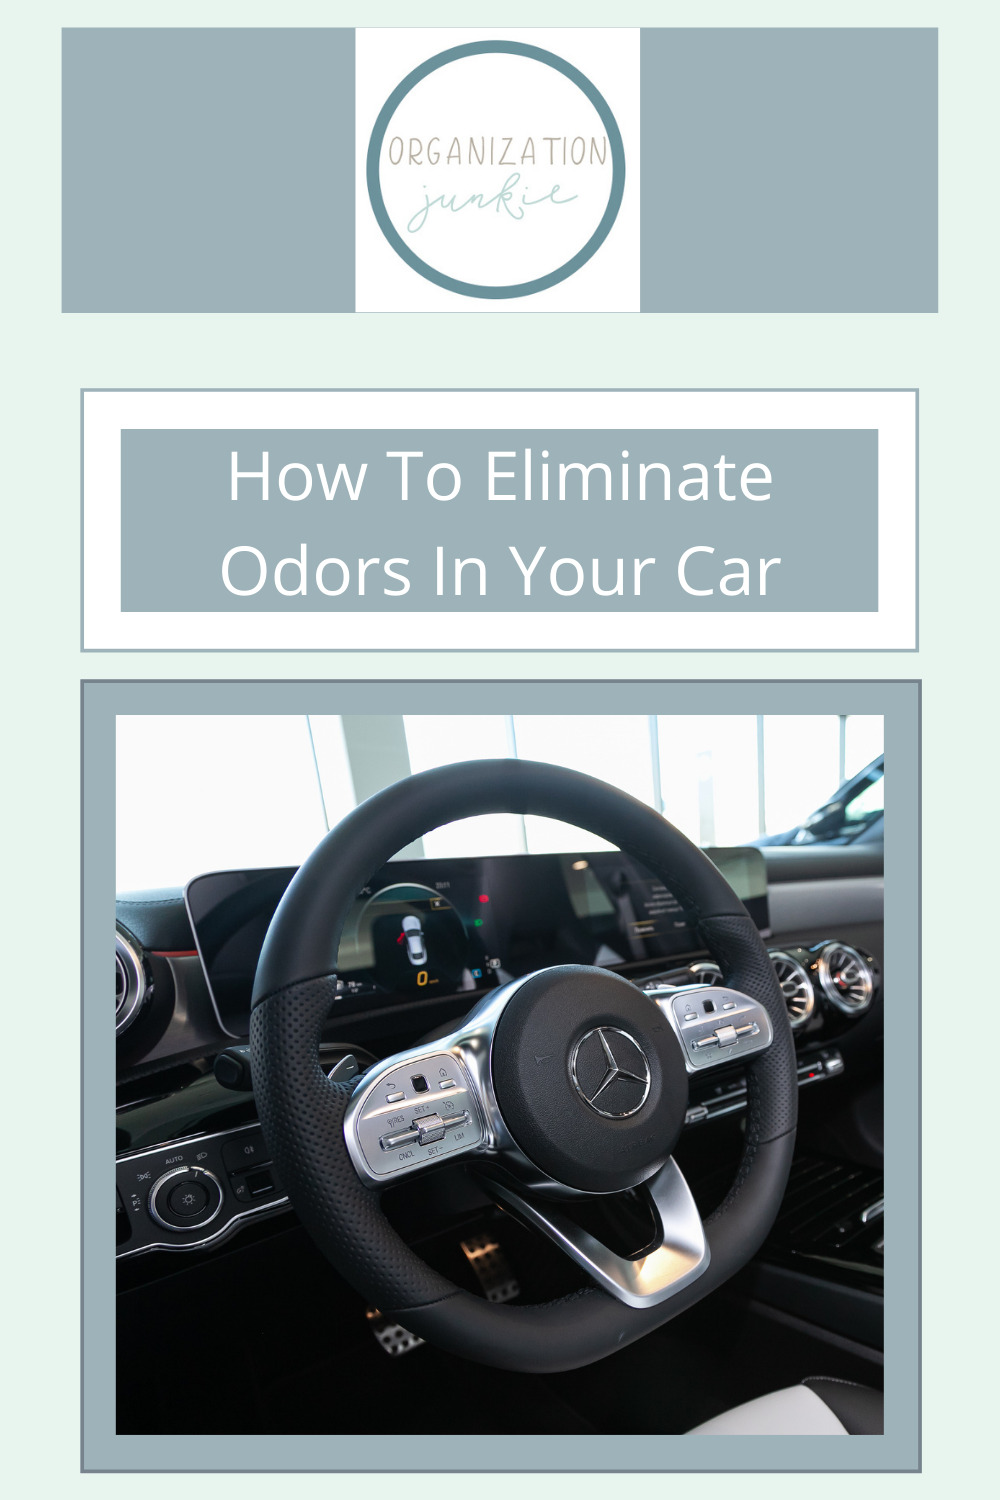 Organizationjunkie.com will help you relax with tips for cleaning and organizing EVERYTHING. Find solutions for tricky messes and smells. Get rid of funky odors in your car with these simple ideas today!